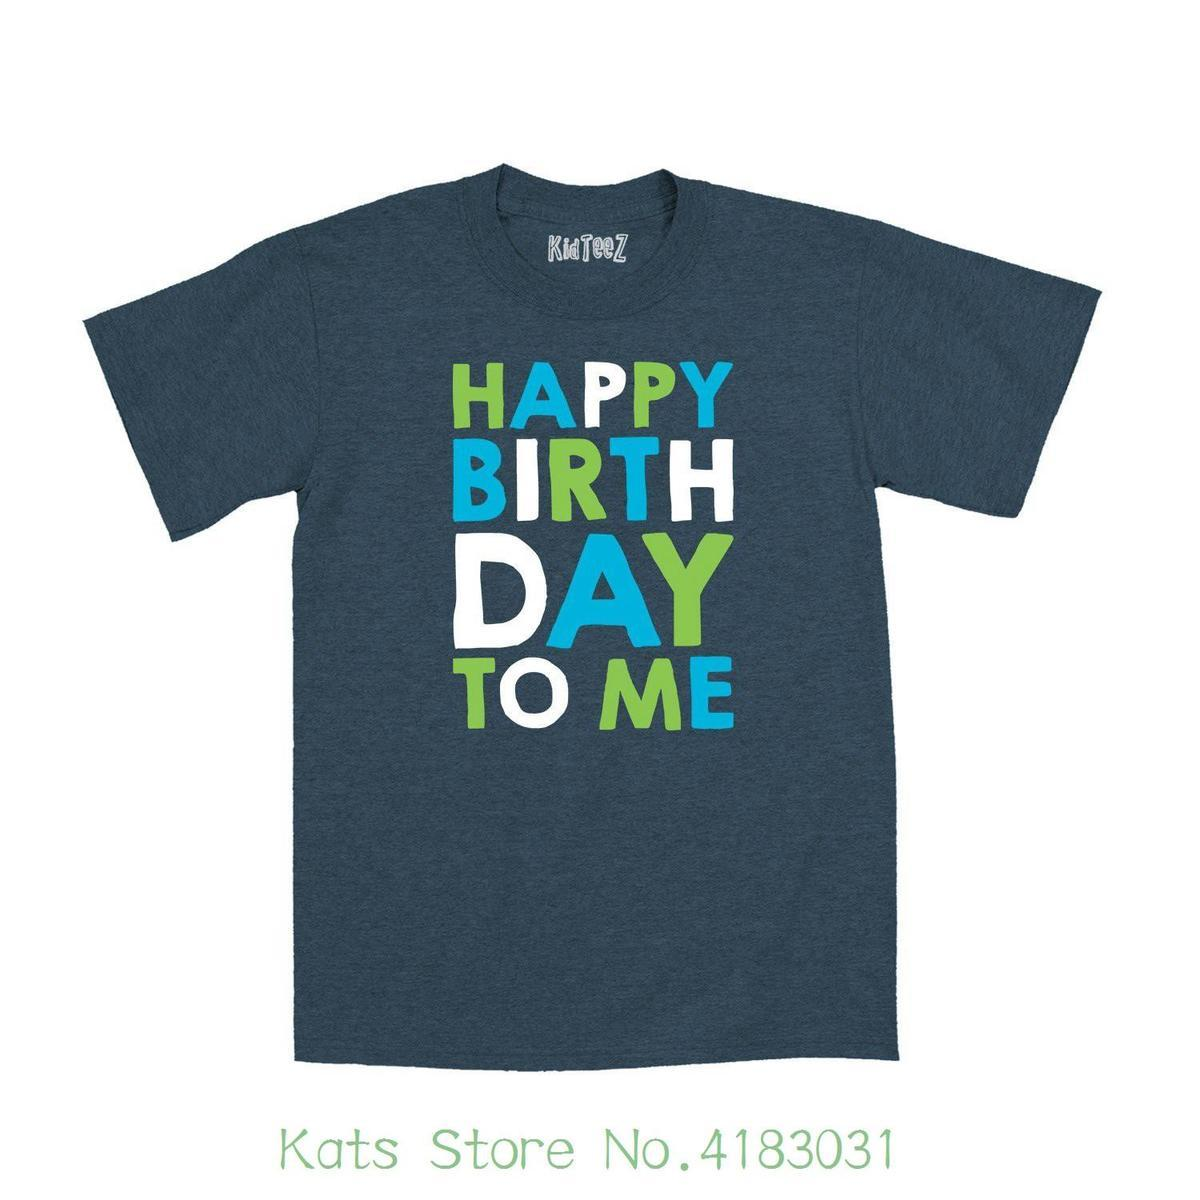 Instant Message Happy Birthday To Me Stacked Blue Green Fun Kids Cute Novelty Toddler T Shirt Cartoon Character Buy Tee Top Sites From Amesion63